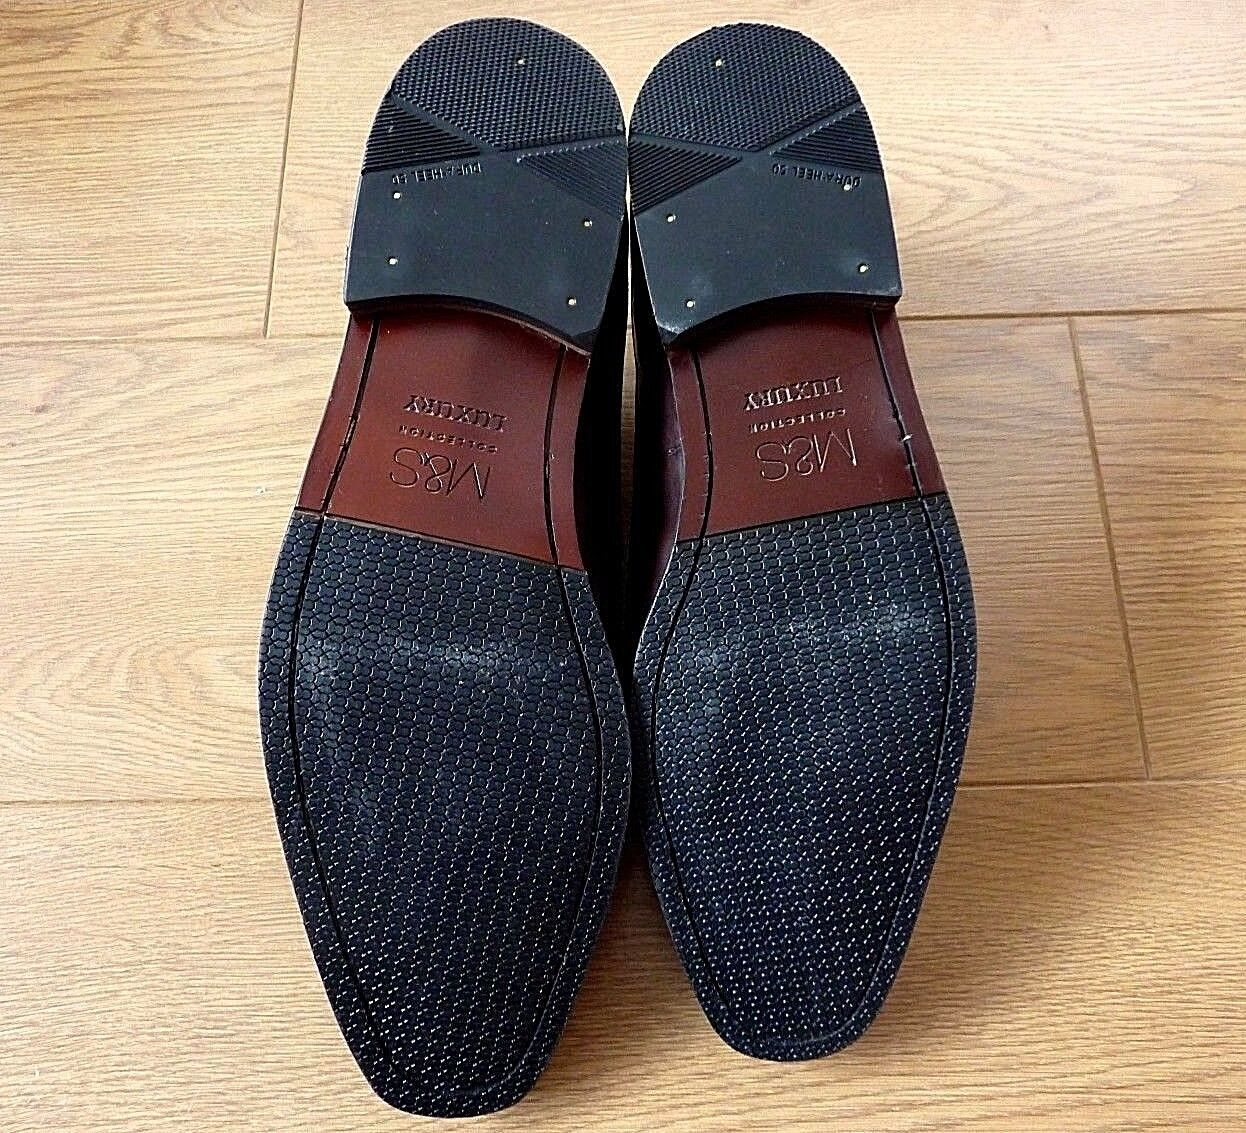 M&S Collection Luxury Derby Schuhes Braun Leder ODD SIZE Schuhes Derby Left UK 12, Right UK 10 f7636f